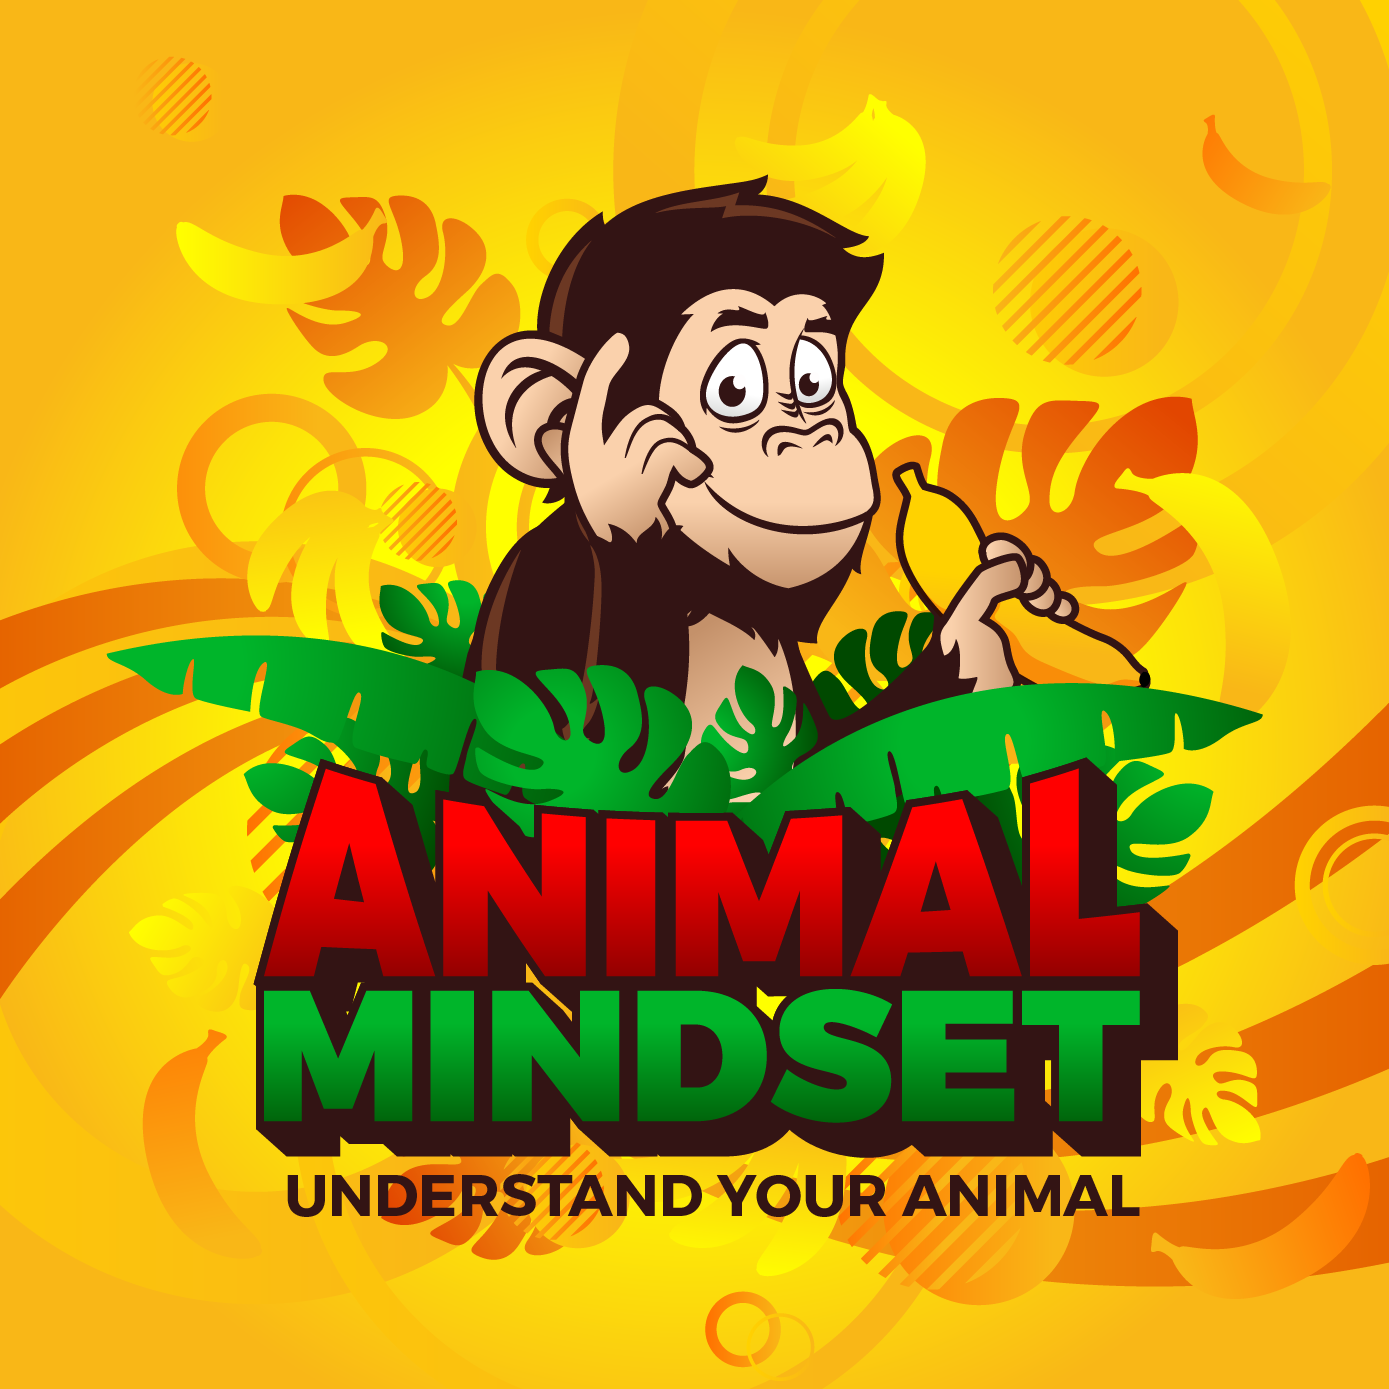 Logo for a FUN and GROOVY animal education brand